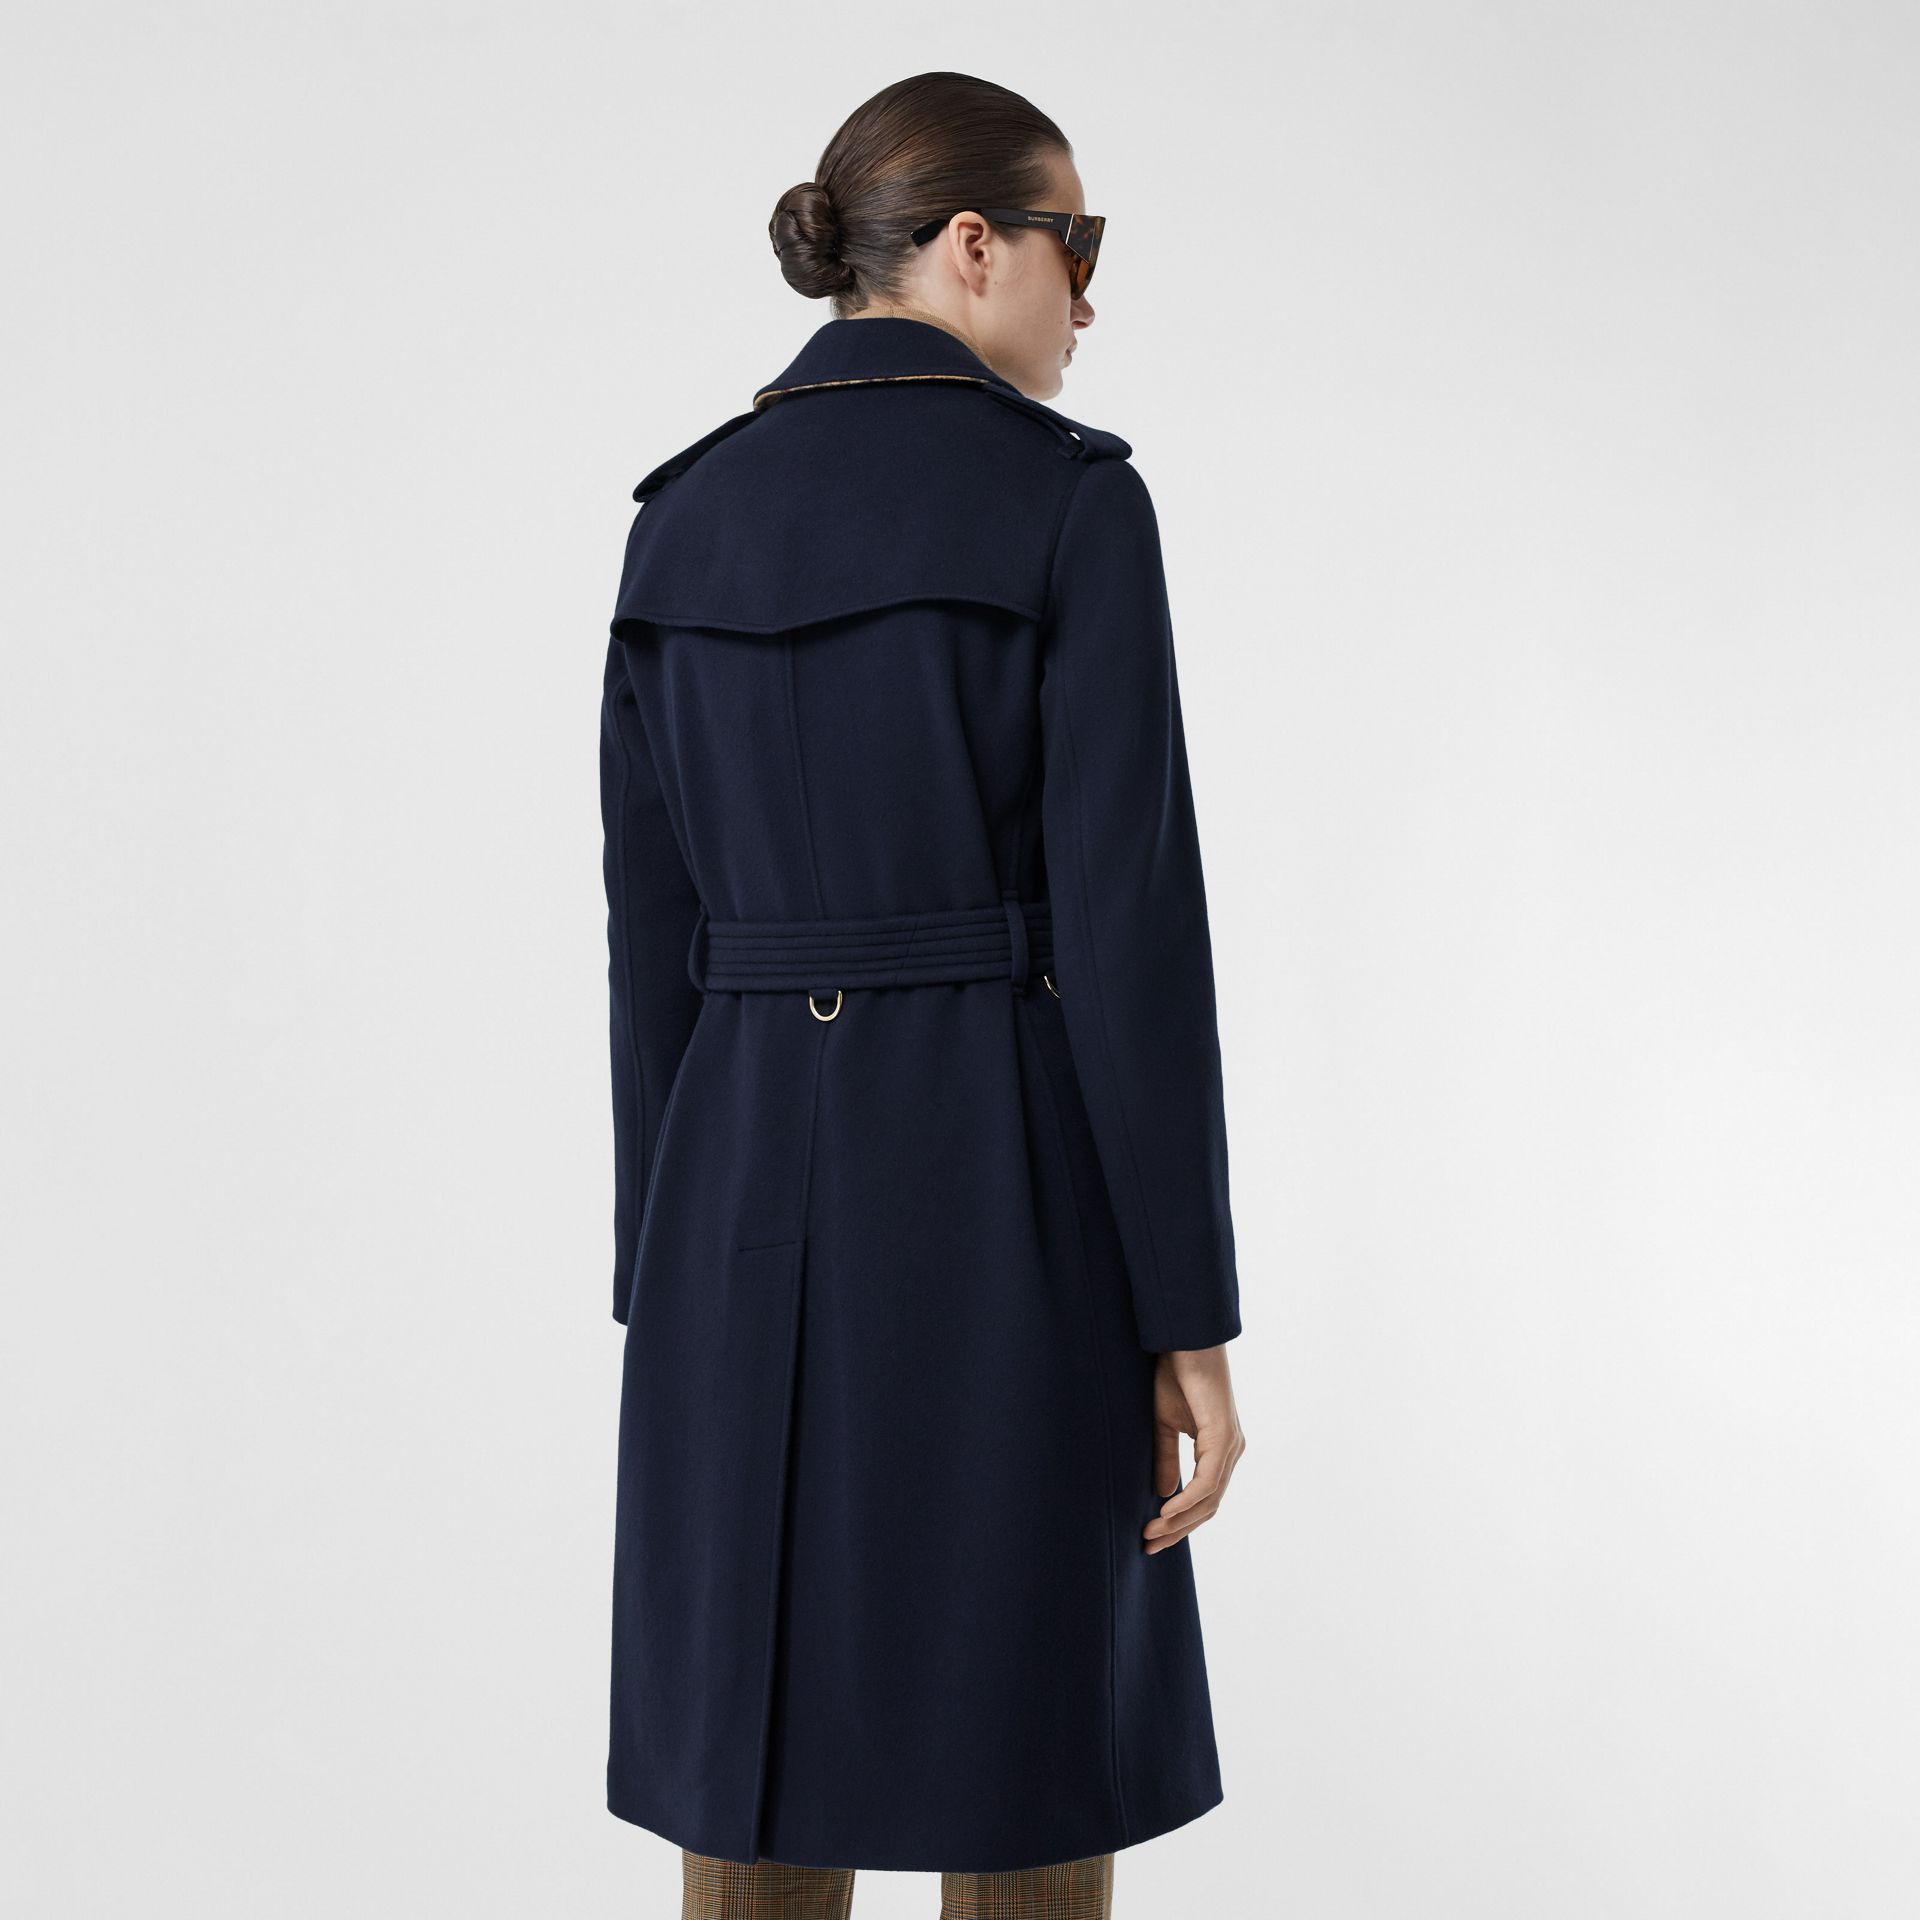 Cashmere Trench Coat in Navy - Women | Burberry Australia - gallery image 2